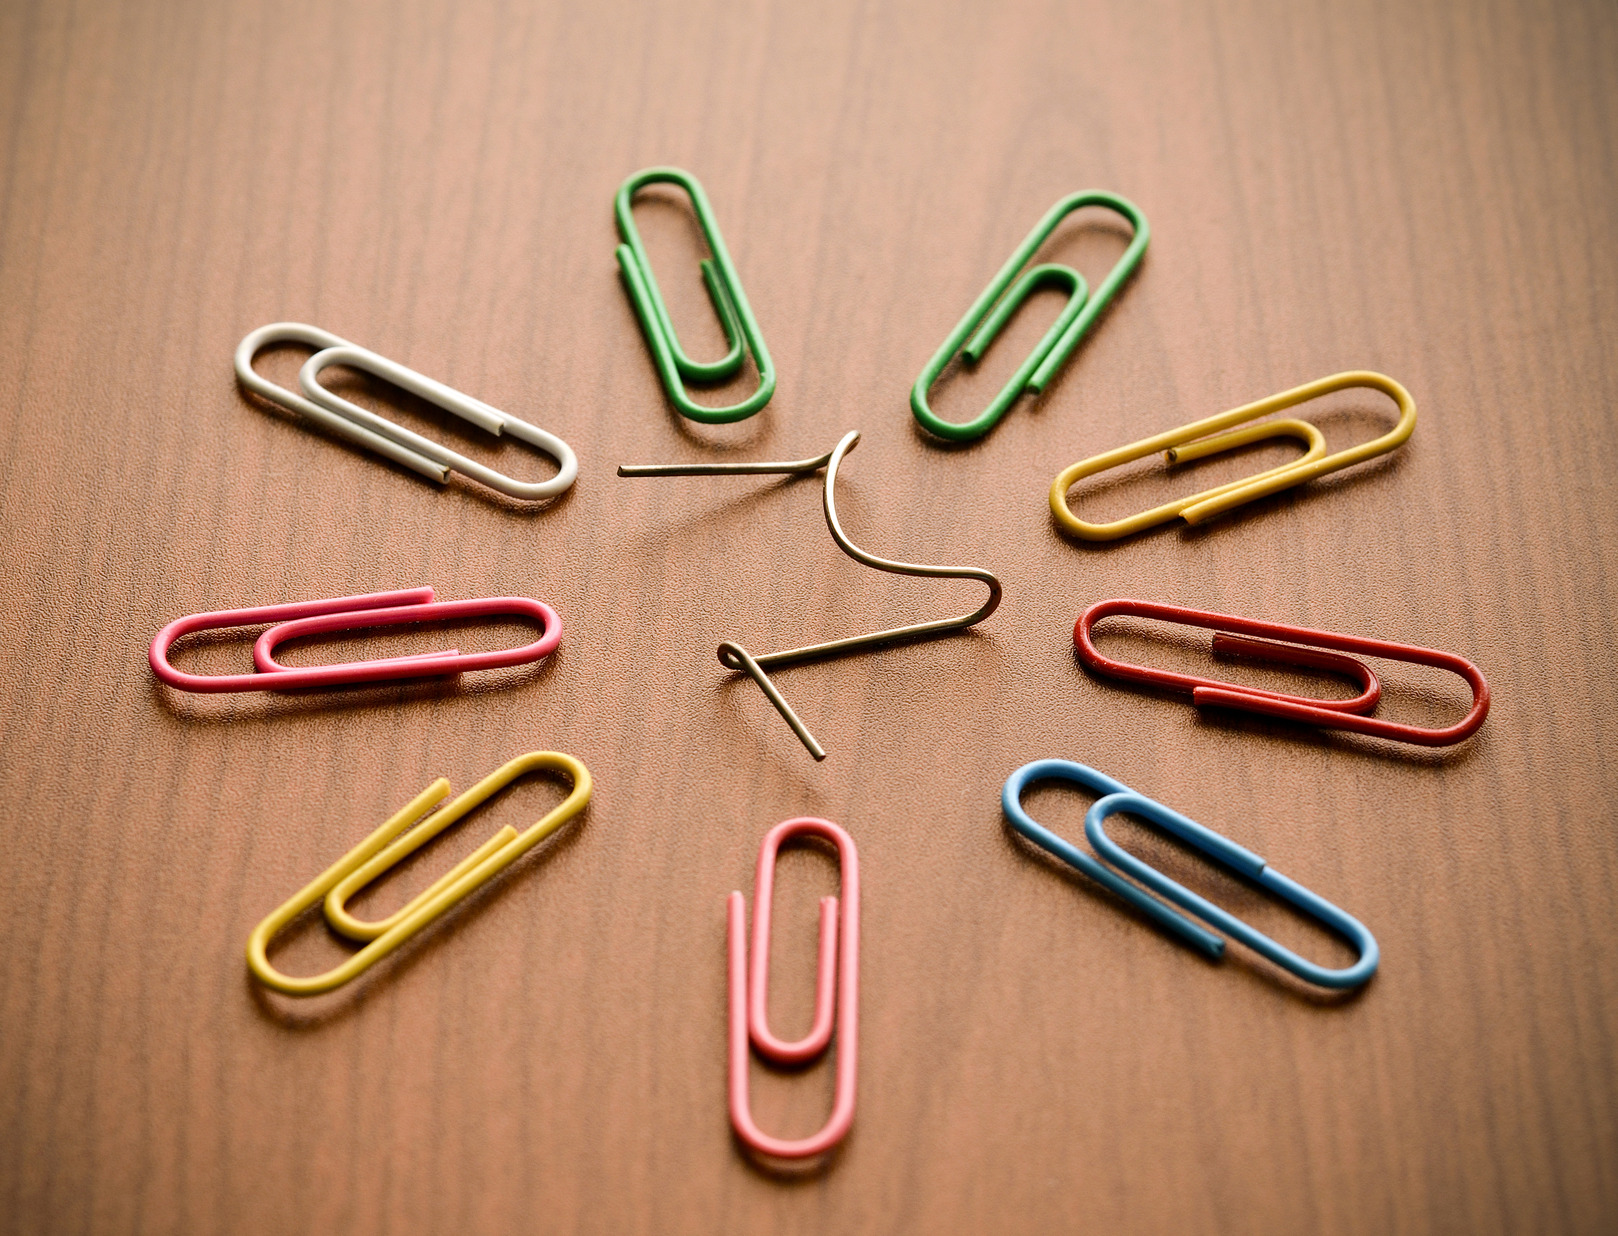 paperclips representing the creative process